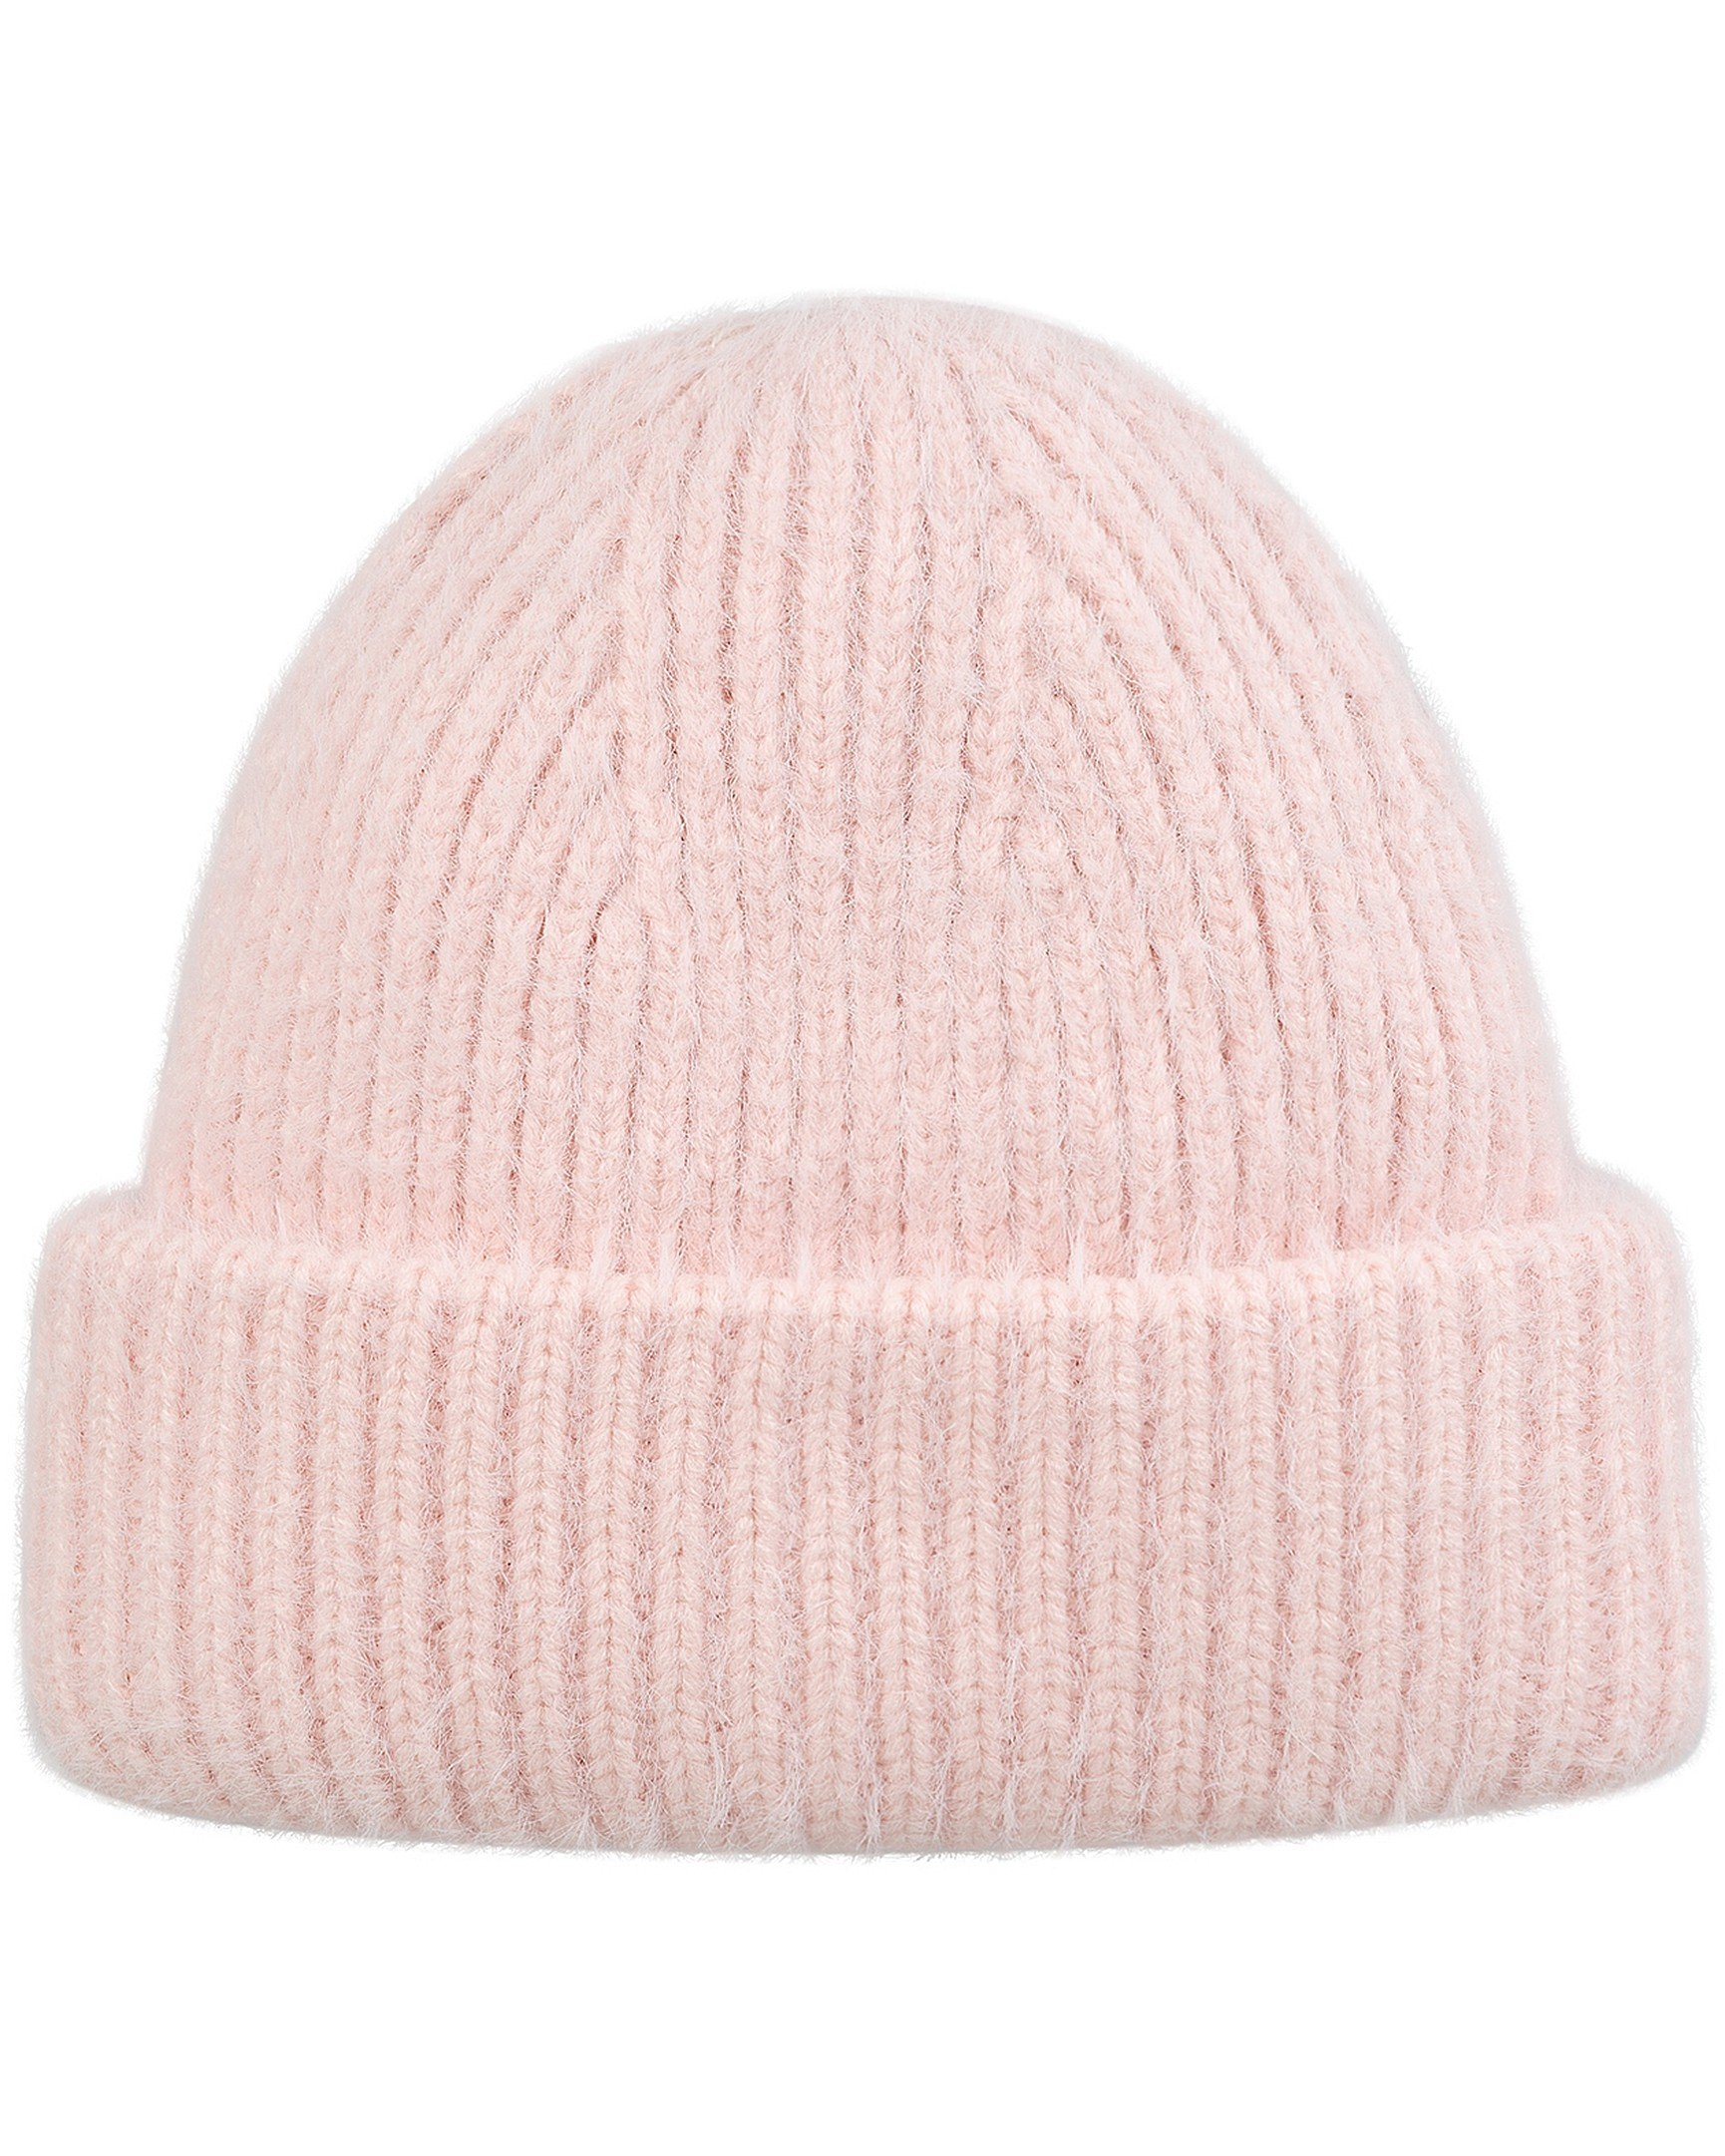 Fluffy Ribbed Knit Pink Beanie Hat d3813ee314f